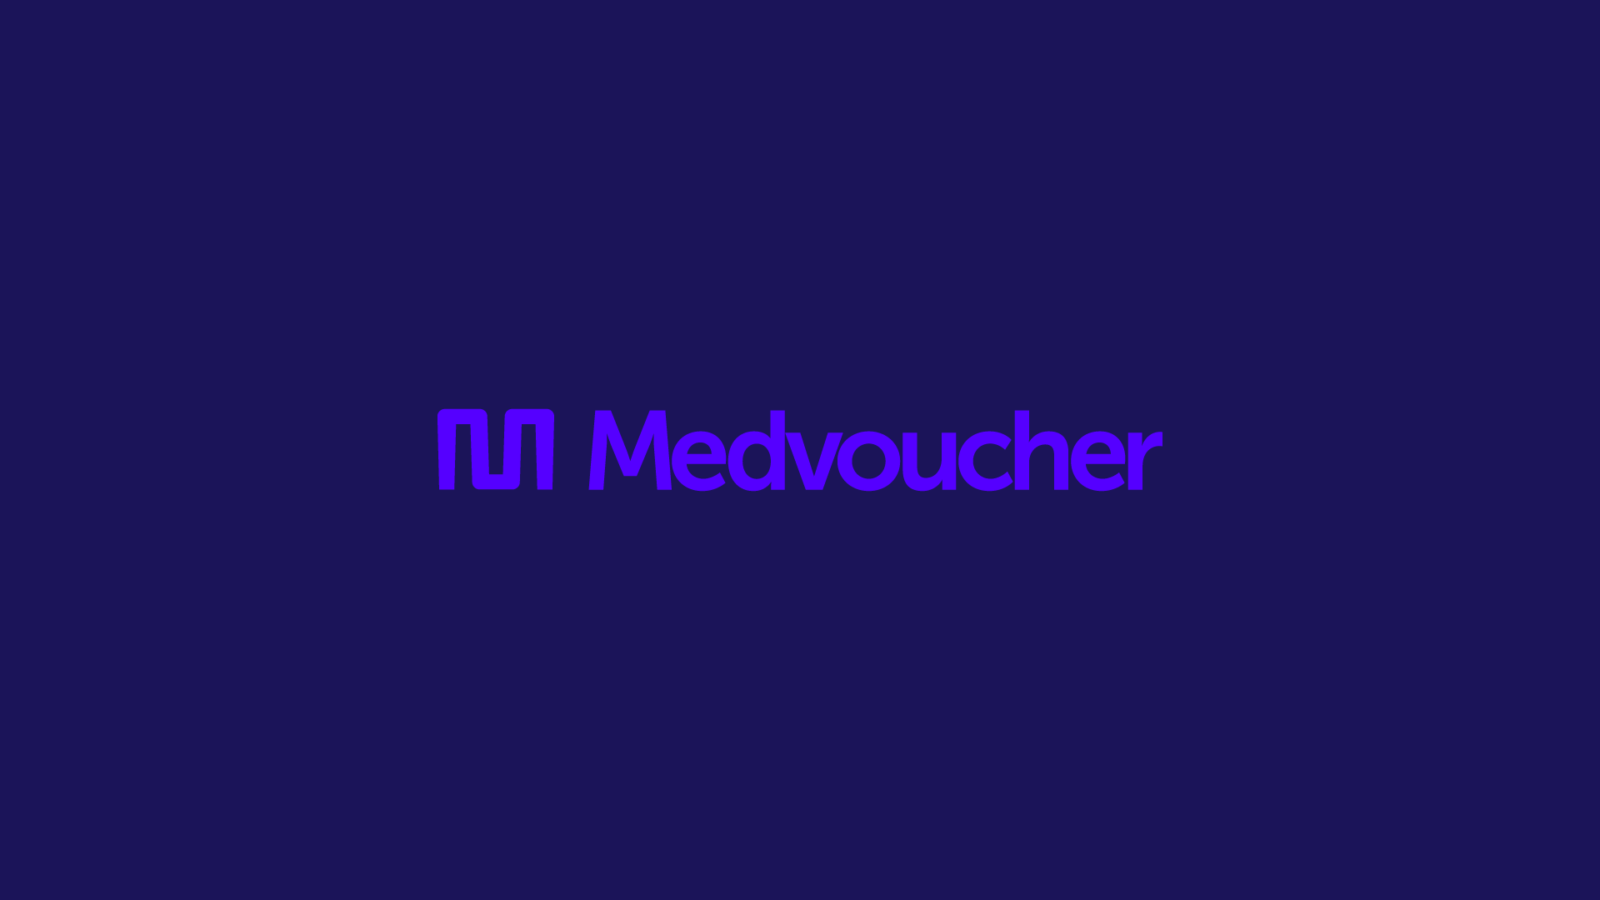 Brand identity logo and strategy for Medvoucher, a healthcare marketplace app